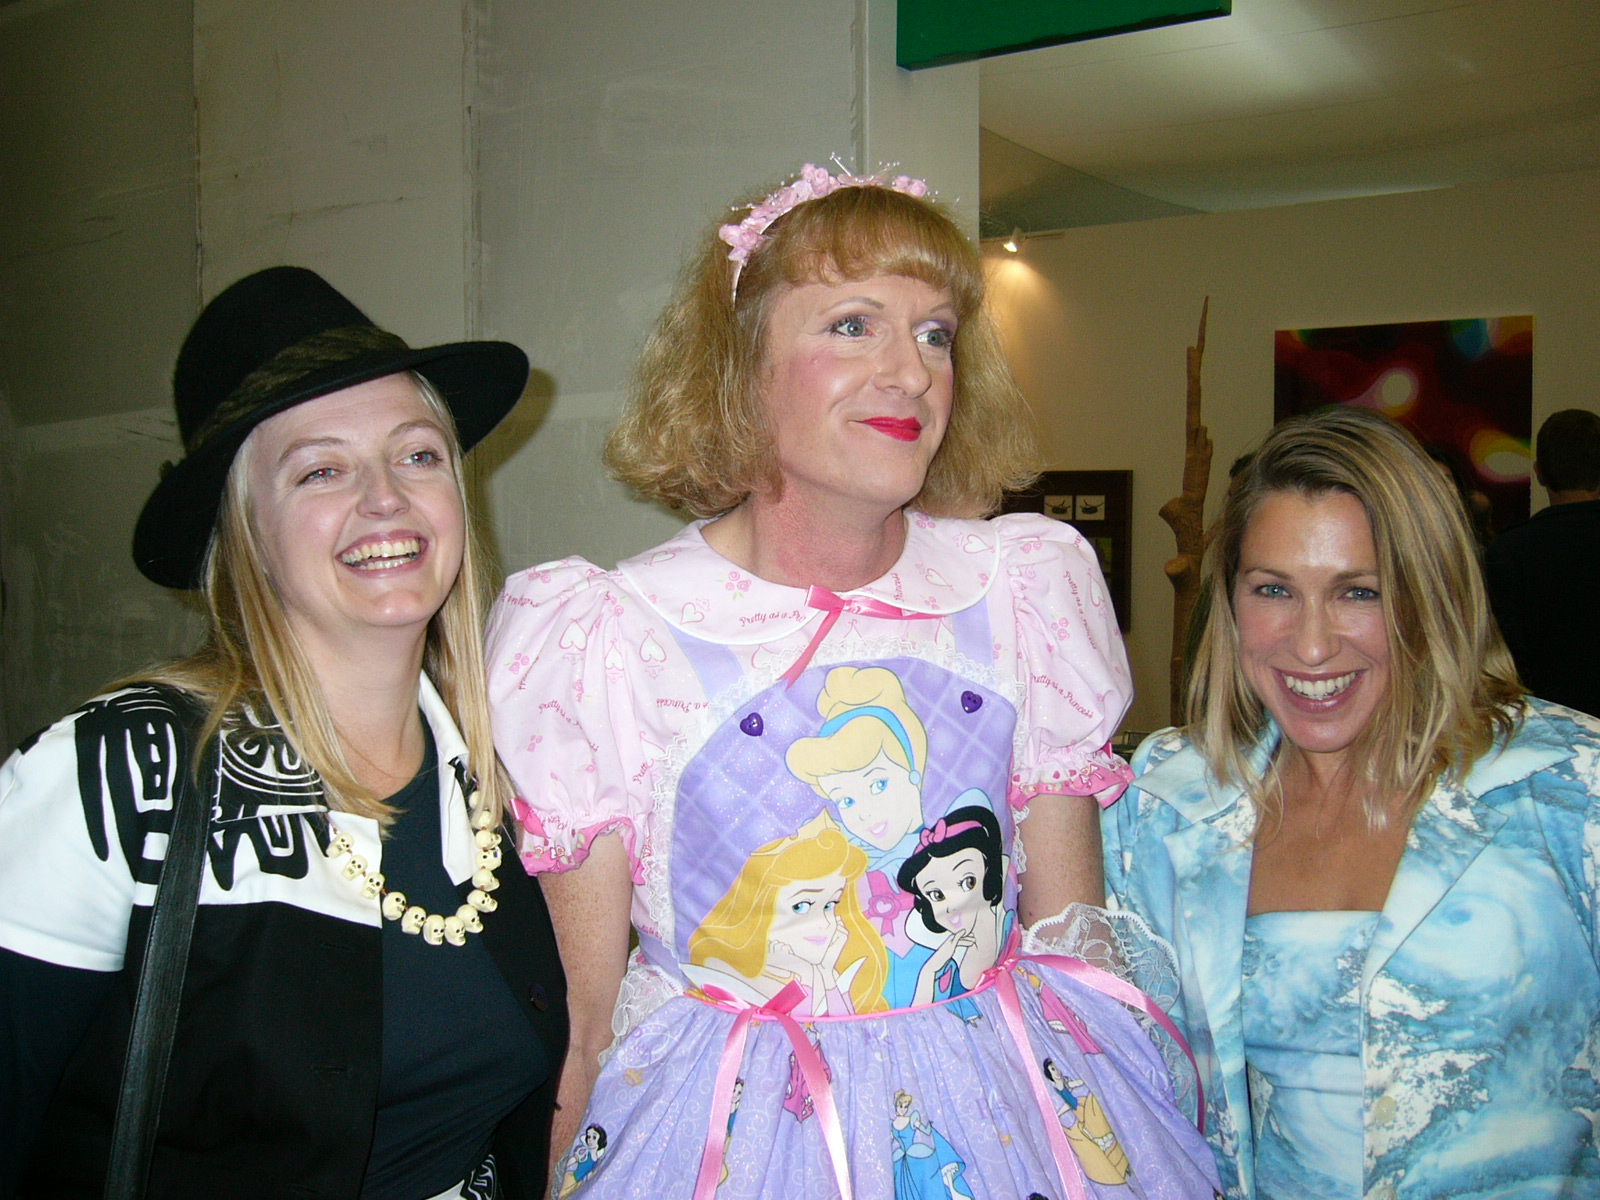 Grayson Perry, Maia Hirst (r), at The Frieze Art Fair, 2004